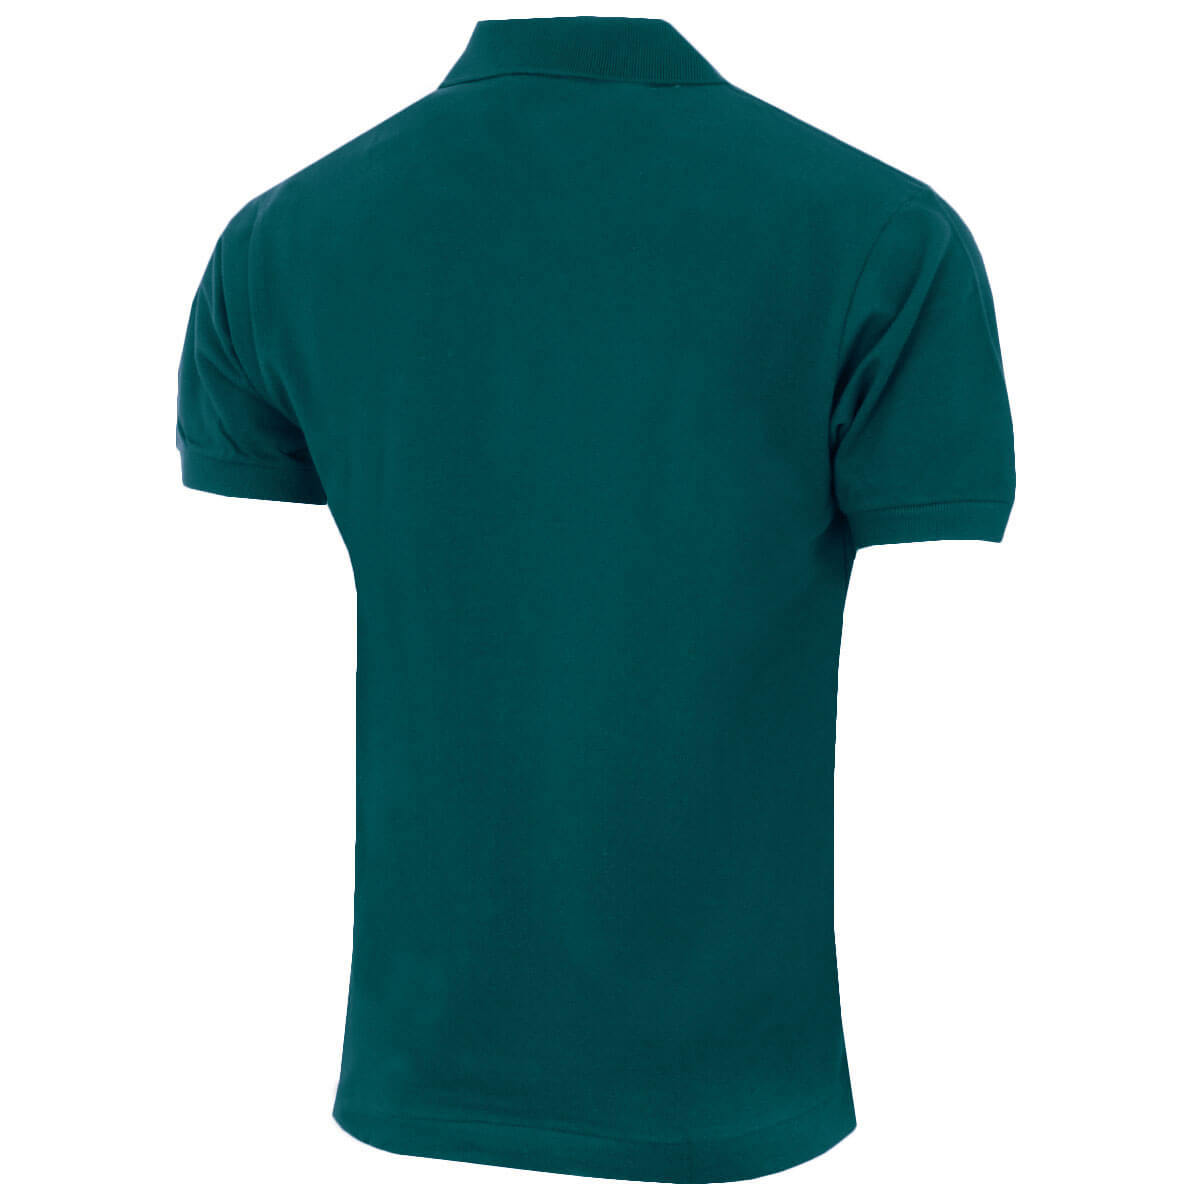 Lacoste-Mens-Classic-Cotton-L1212-Short-Sleeve-Polo-Shirt-26-OFF-RRP thumbnail 41